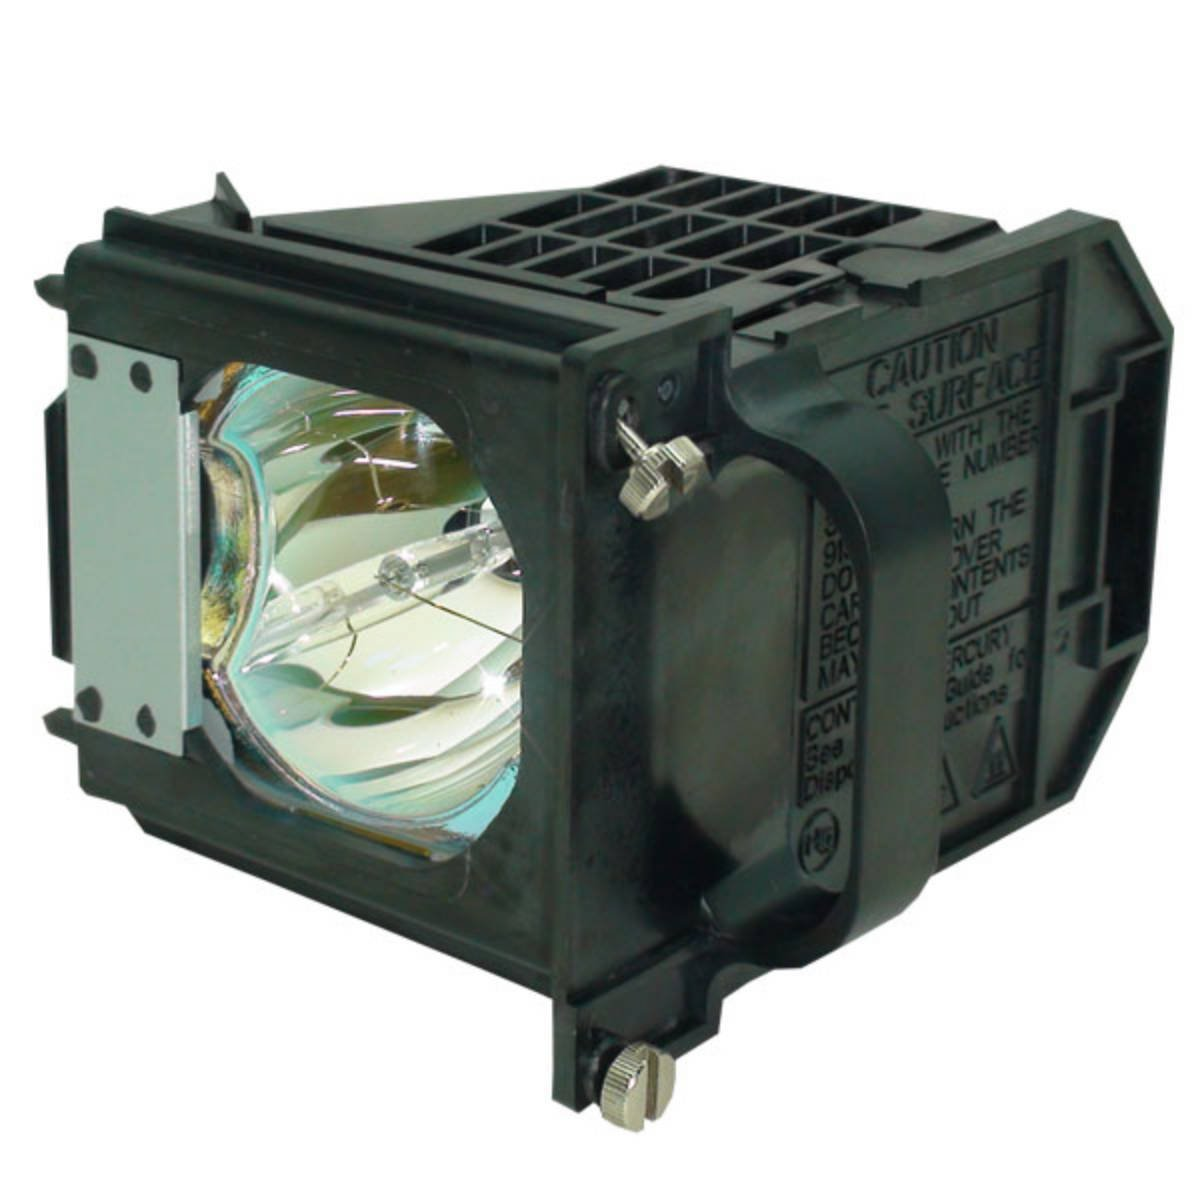 b mitsubishi reg vlt h replacement lamp for photo product c